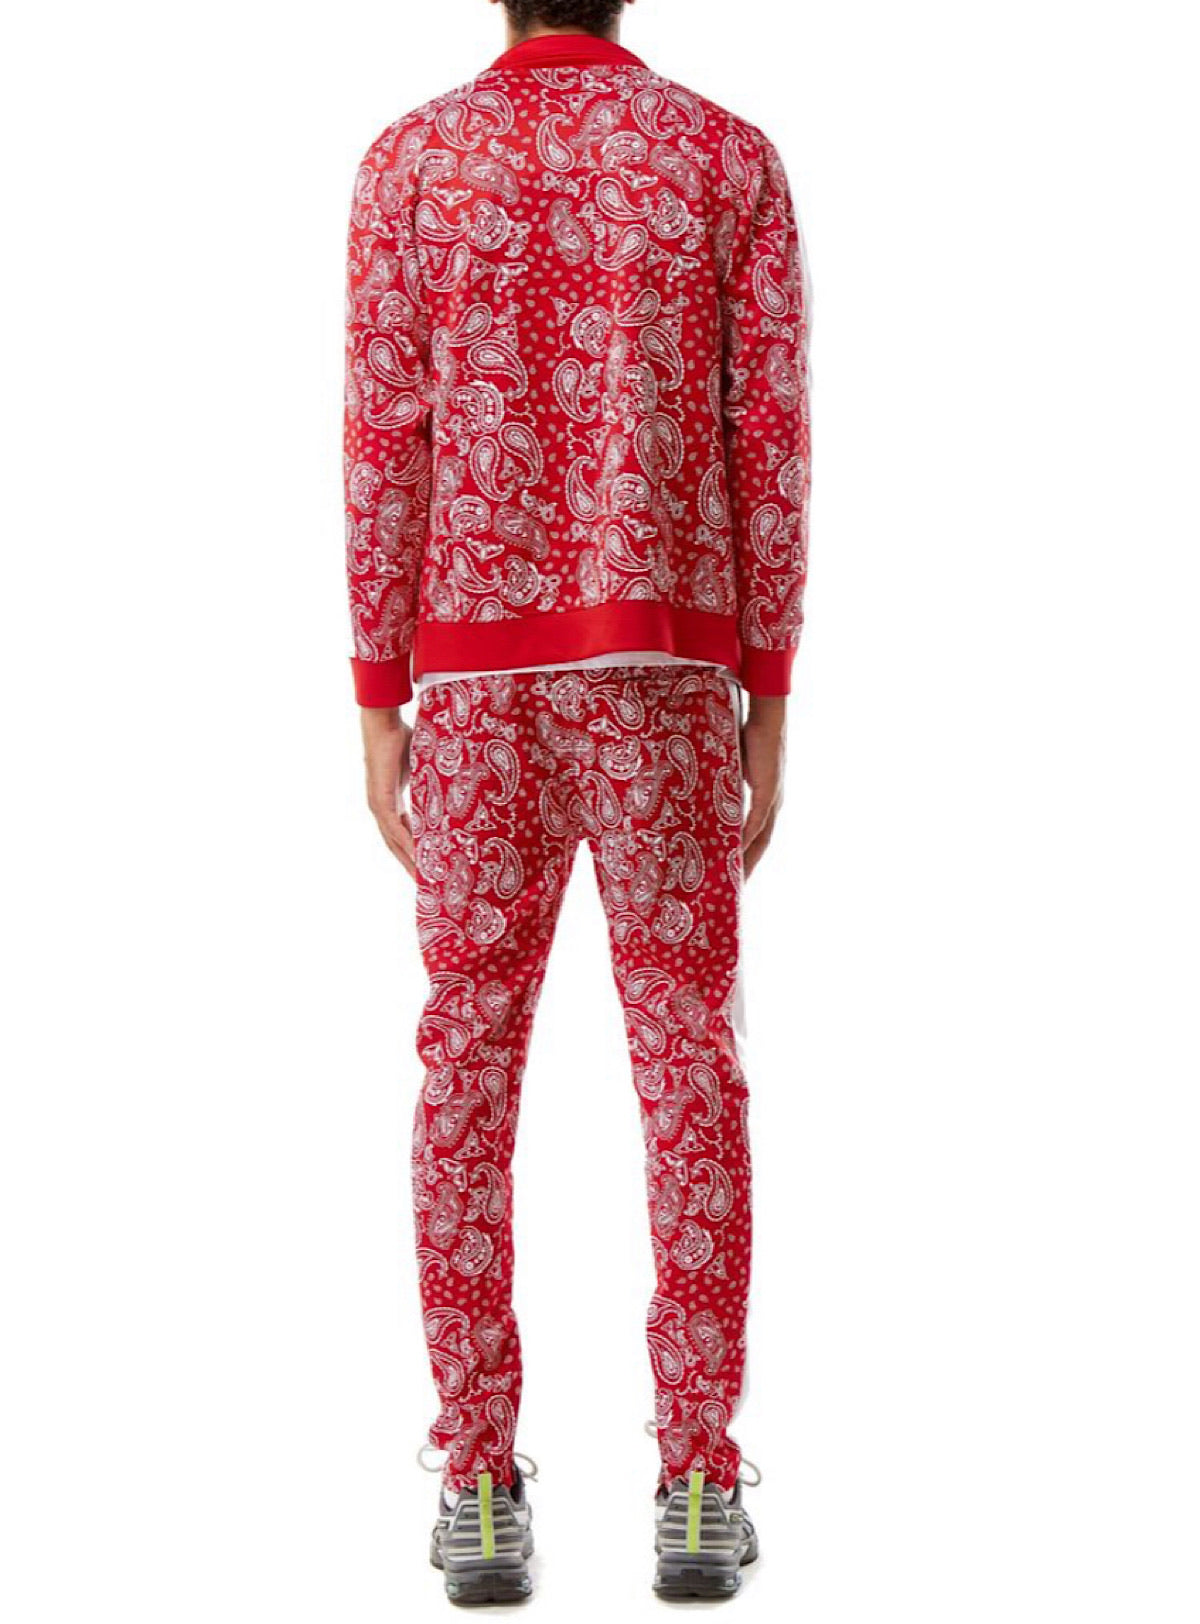 Rebel Minds Track Suit - Bandana - Red - 1A2-513